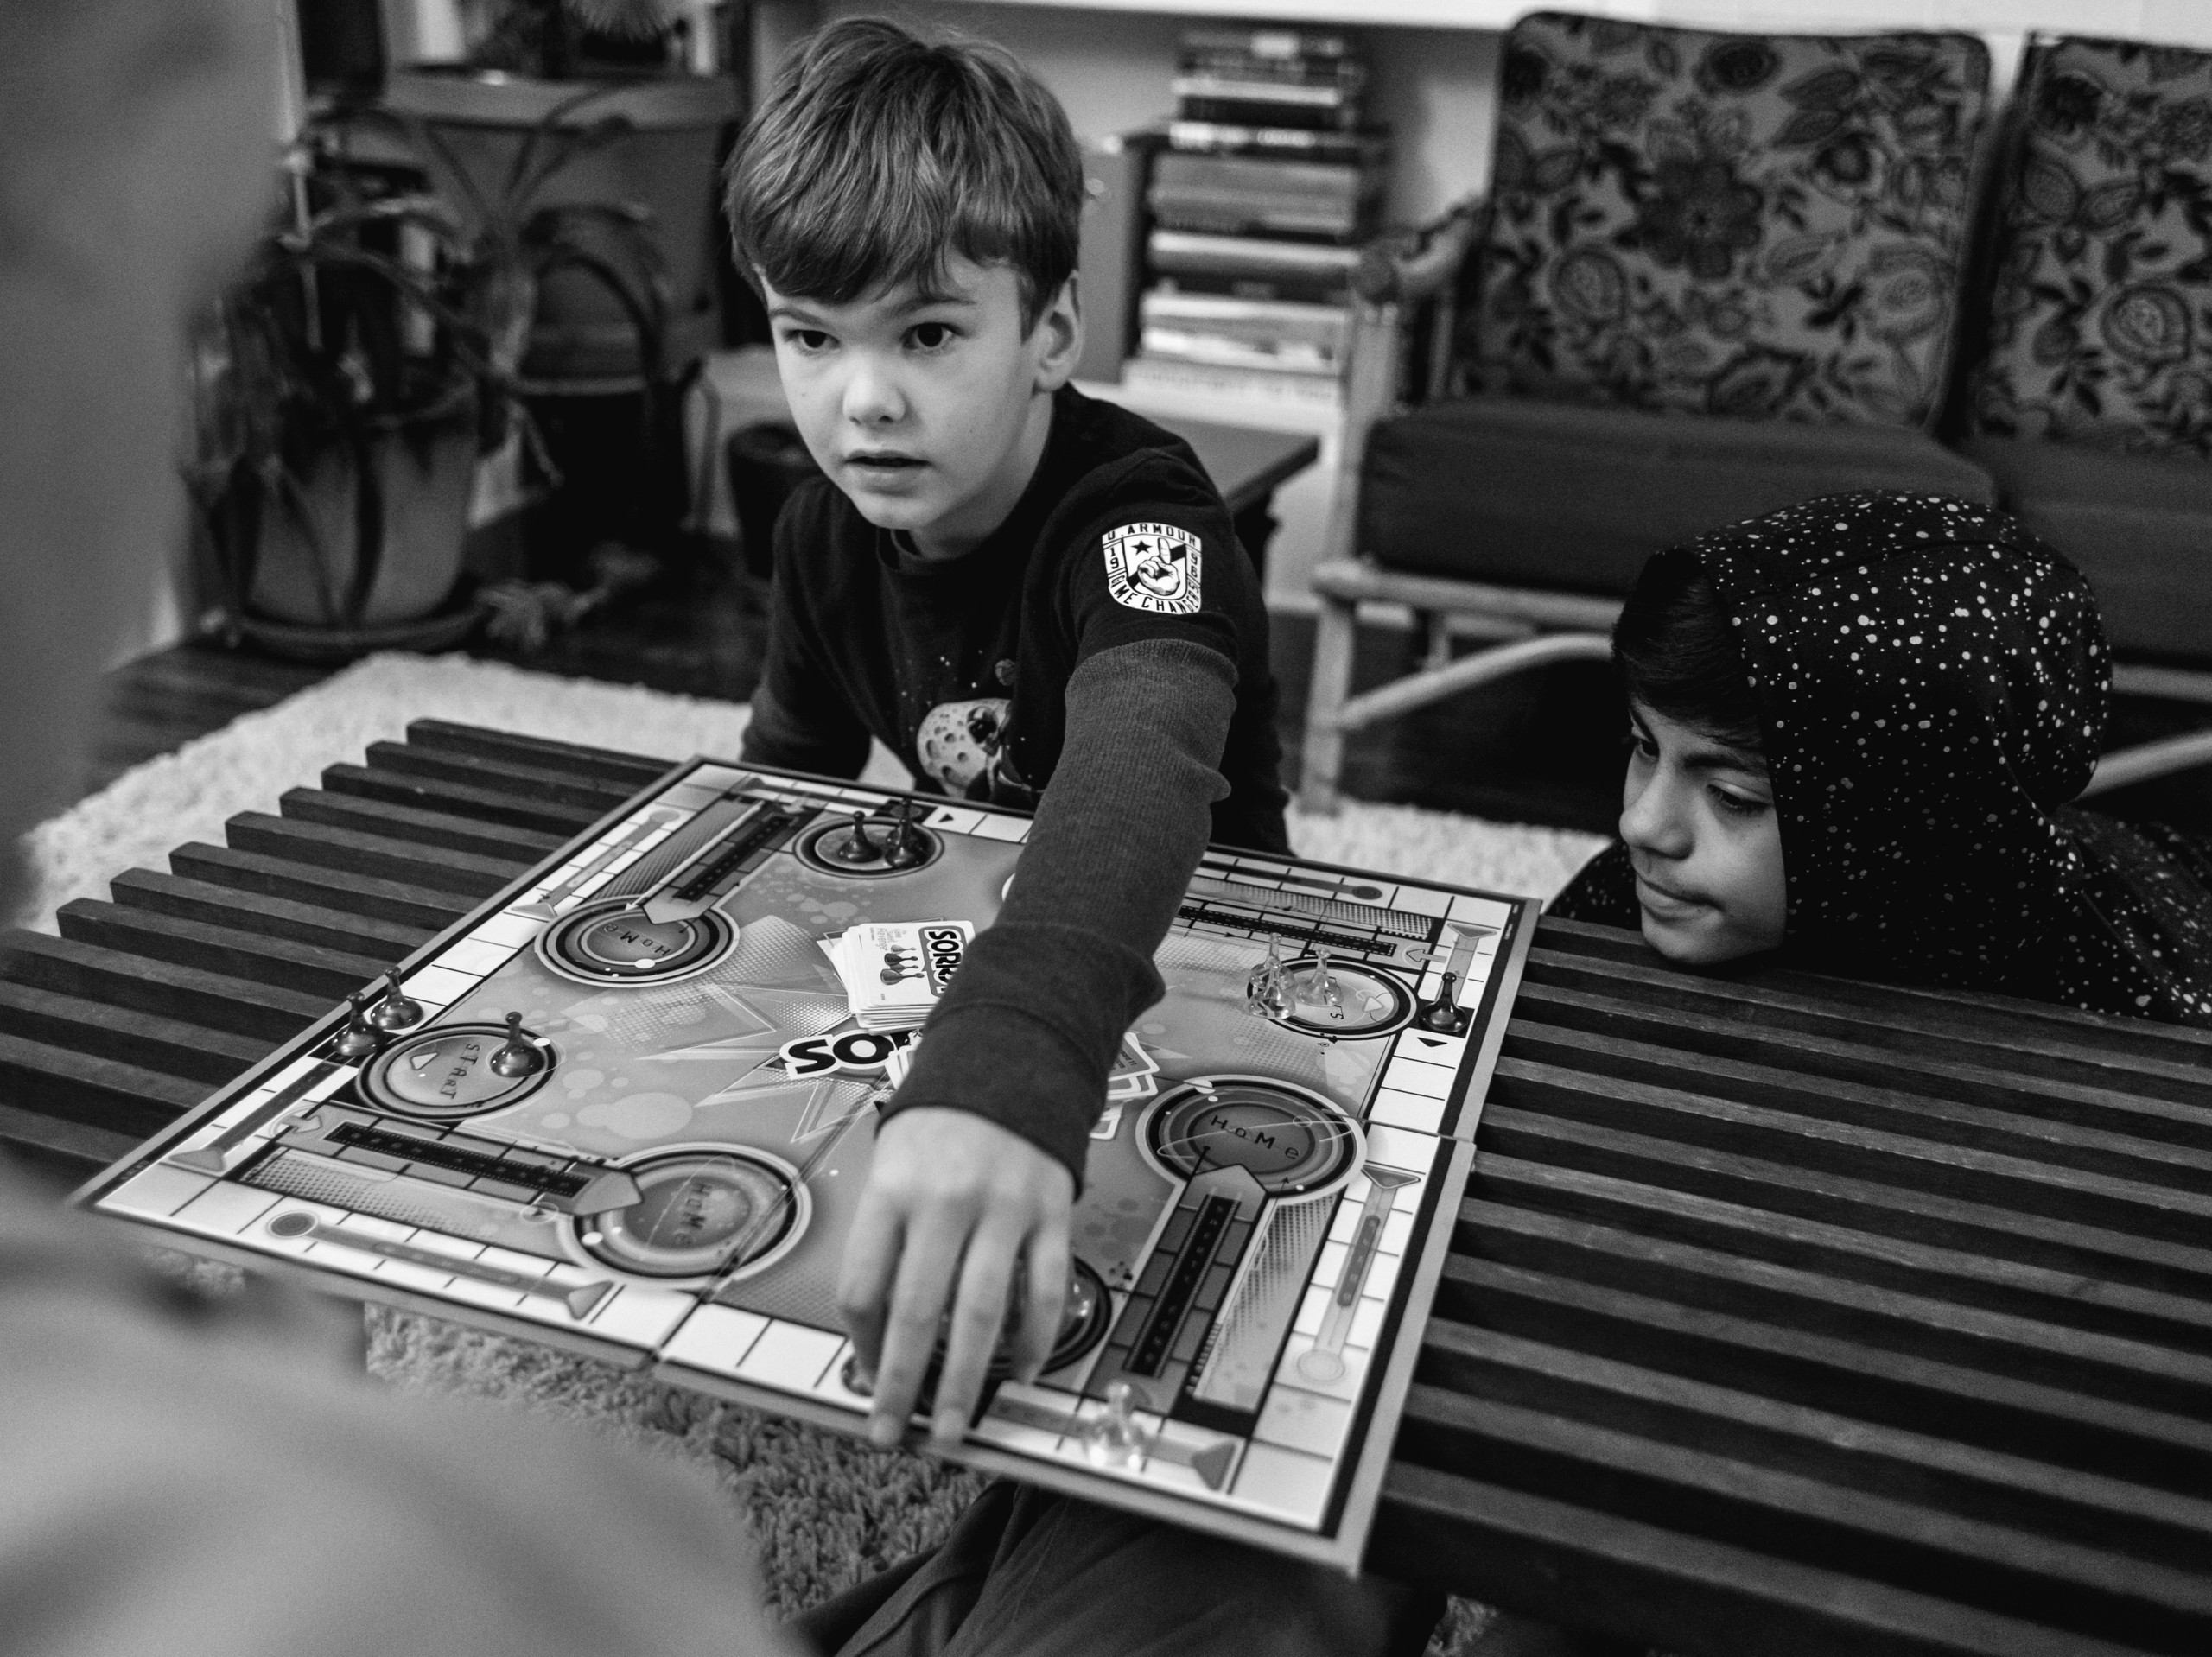 Boys playing board game